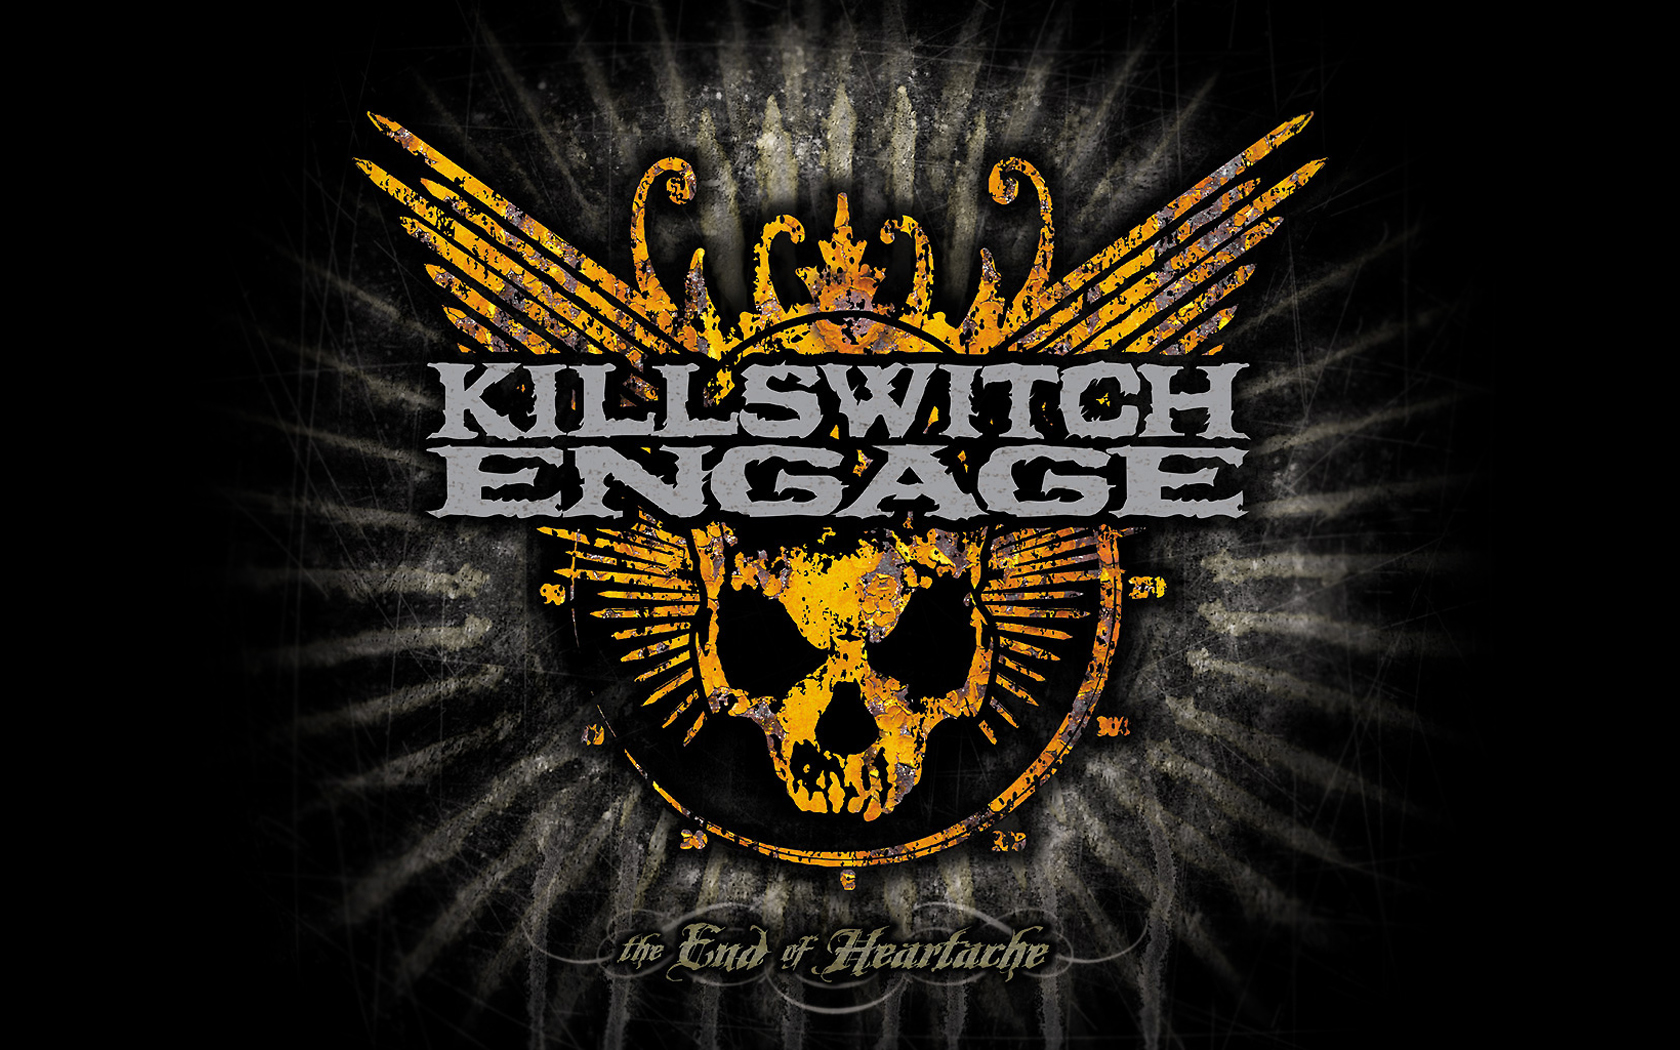 Bullet For My Valentine Wallpaper Hd 14 Killswitch Engage Hd Wallpapers Background Images